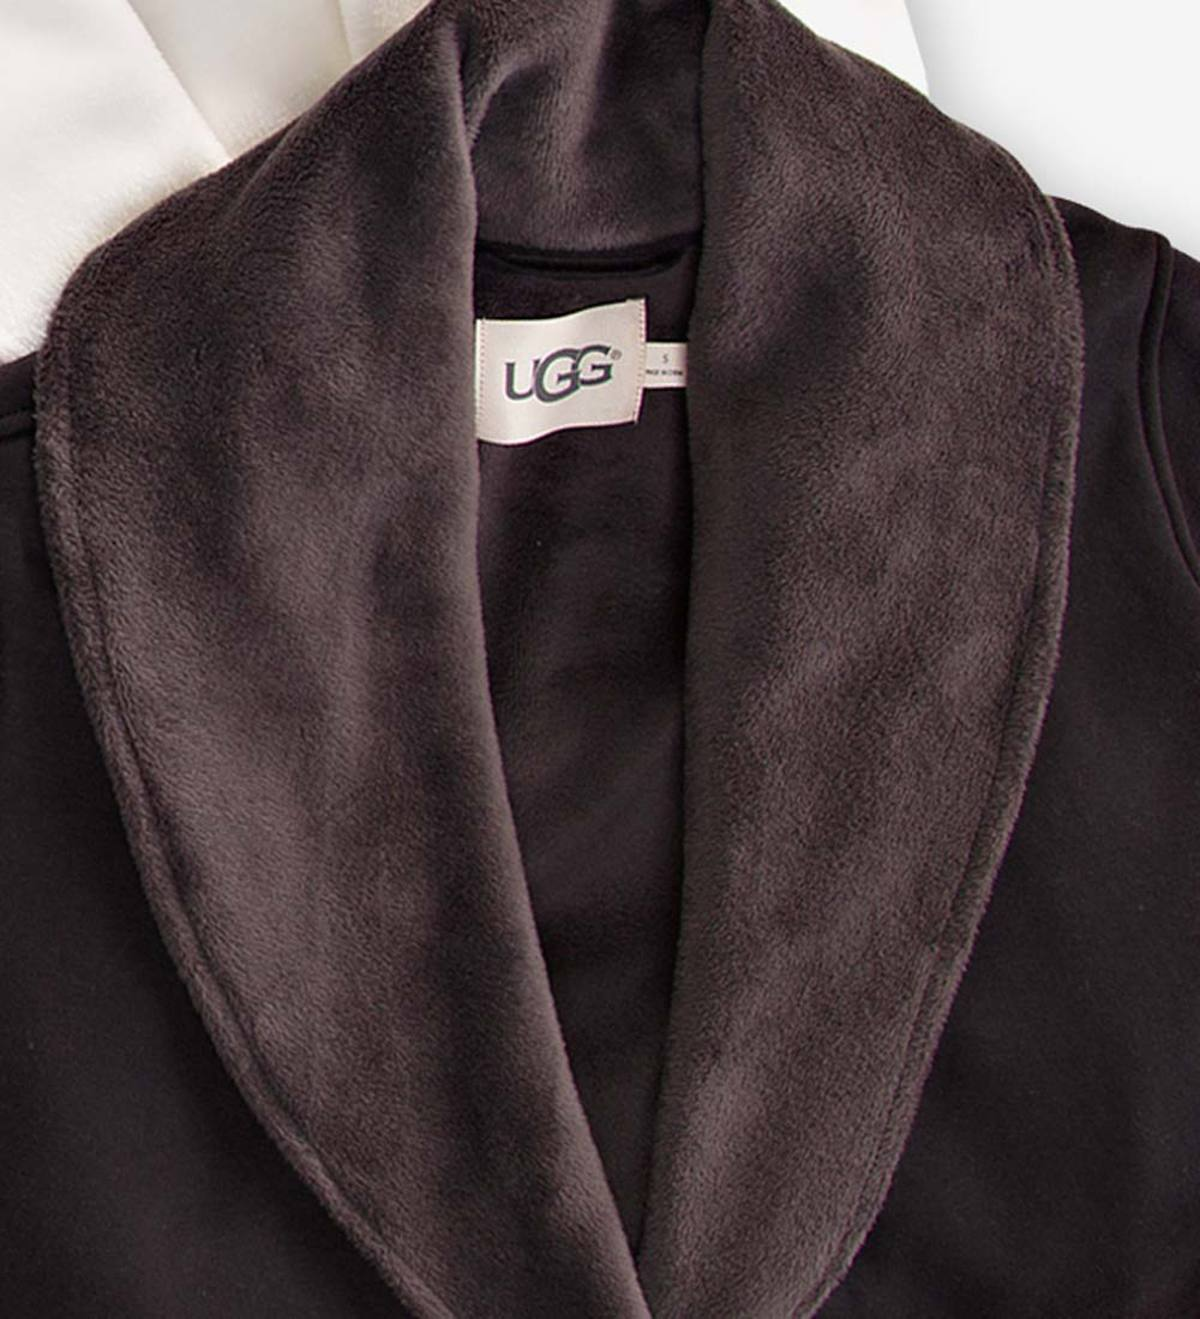 UGG® Australia Women's Duffield Robe - Charcoal - L(12-14)